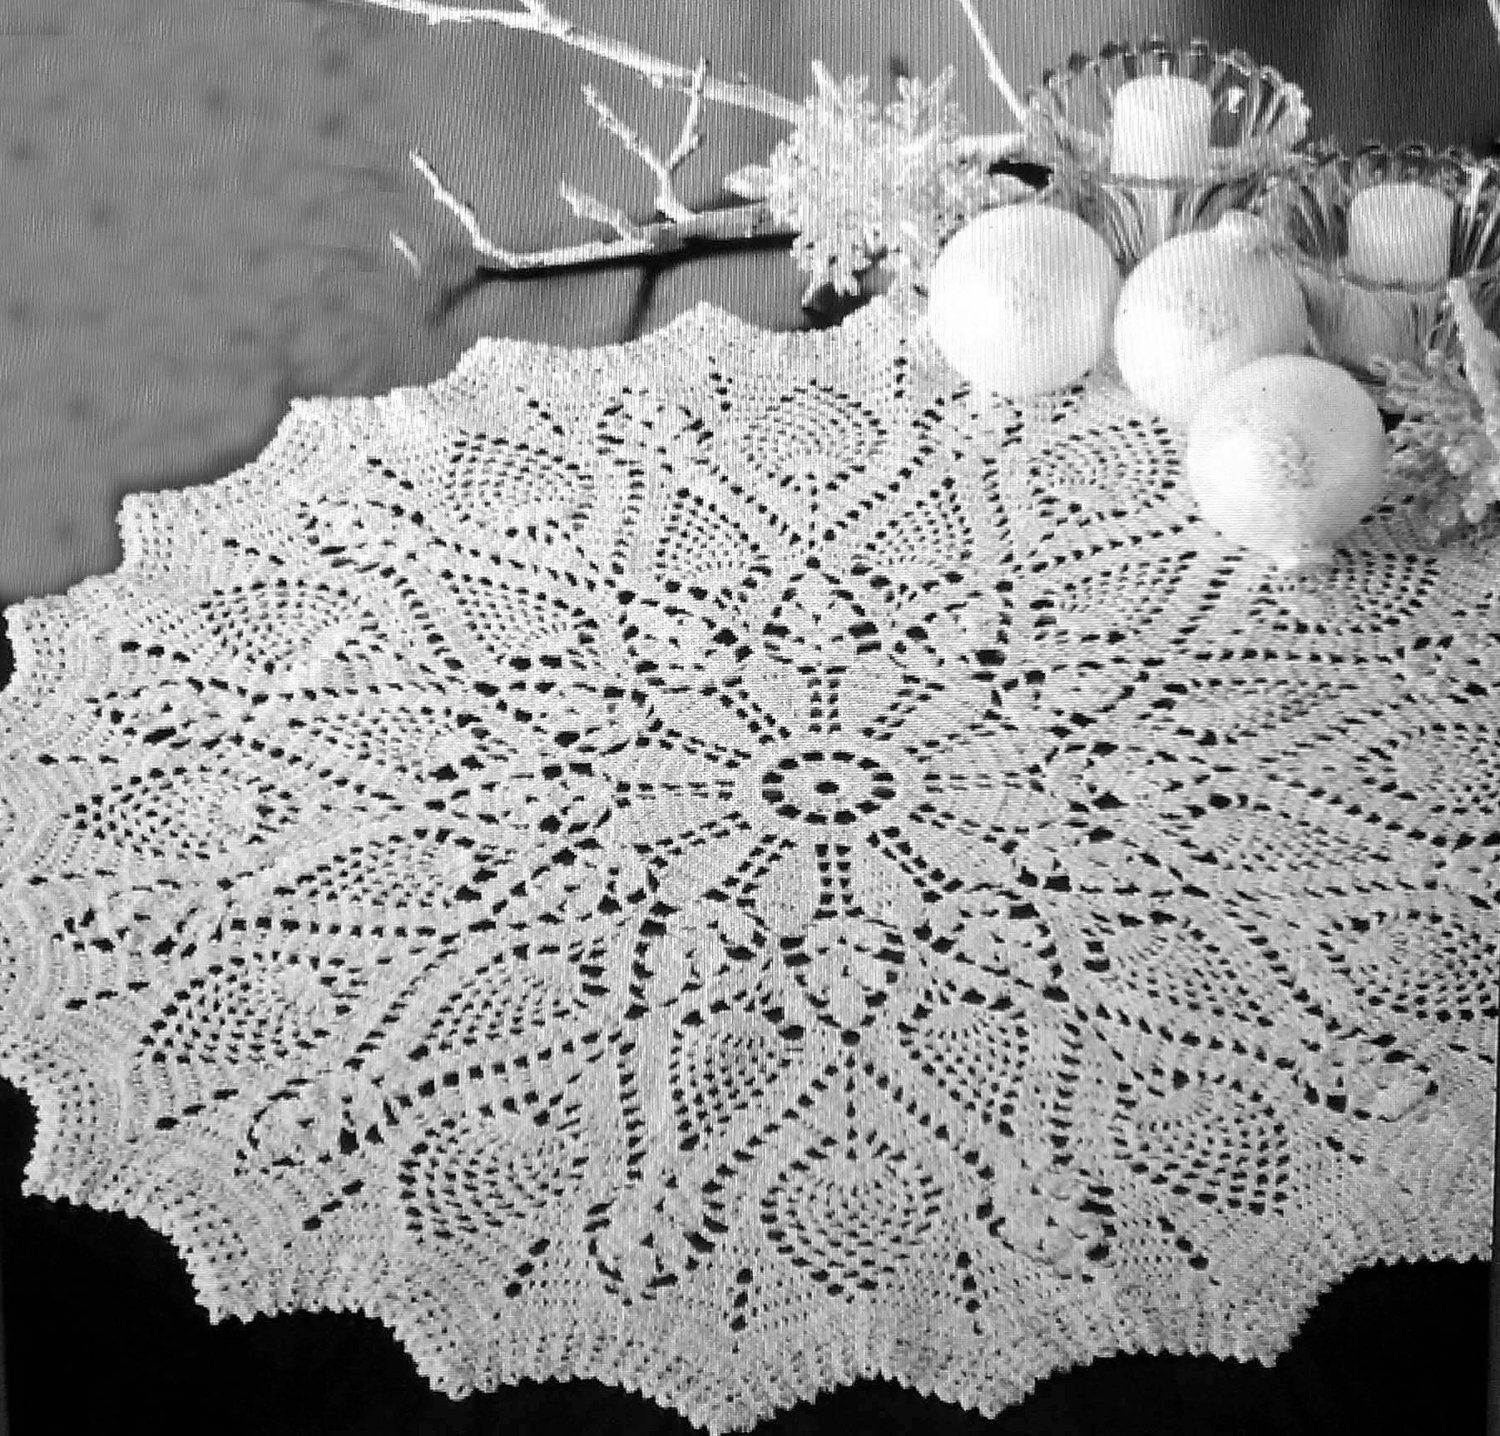 Treasured Heirlooms Crochet Vintage Pattern Shop, doilies, place ...